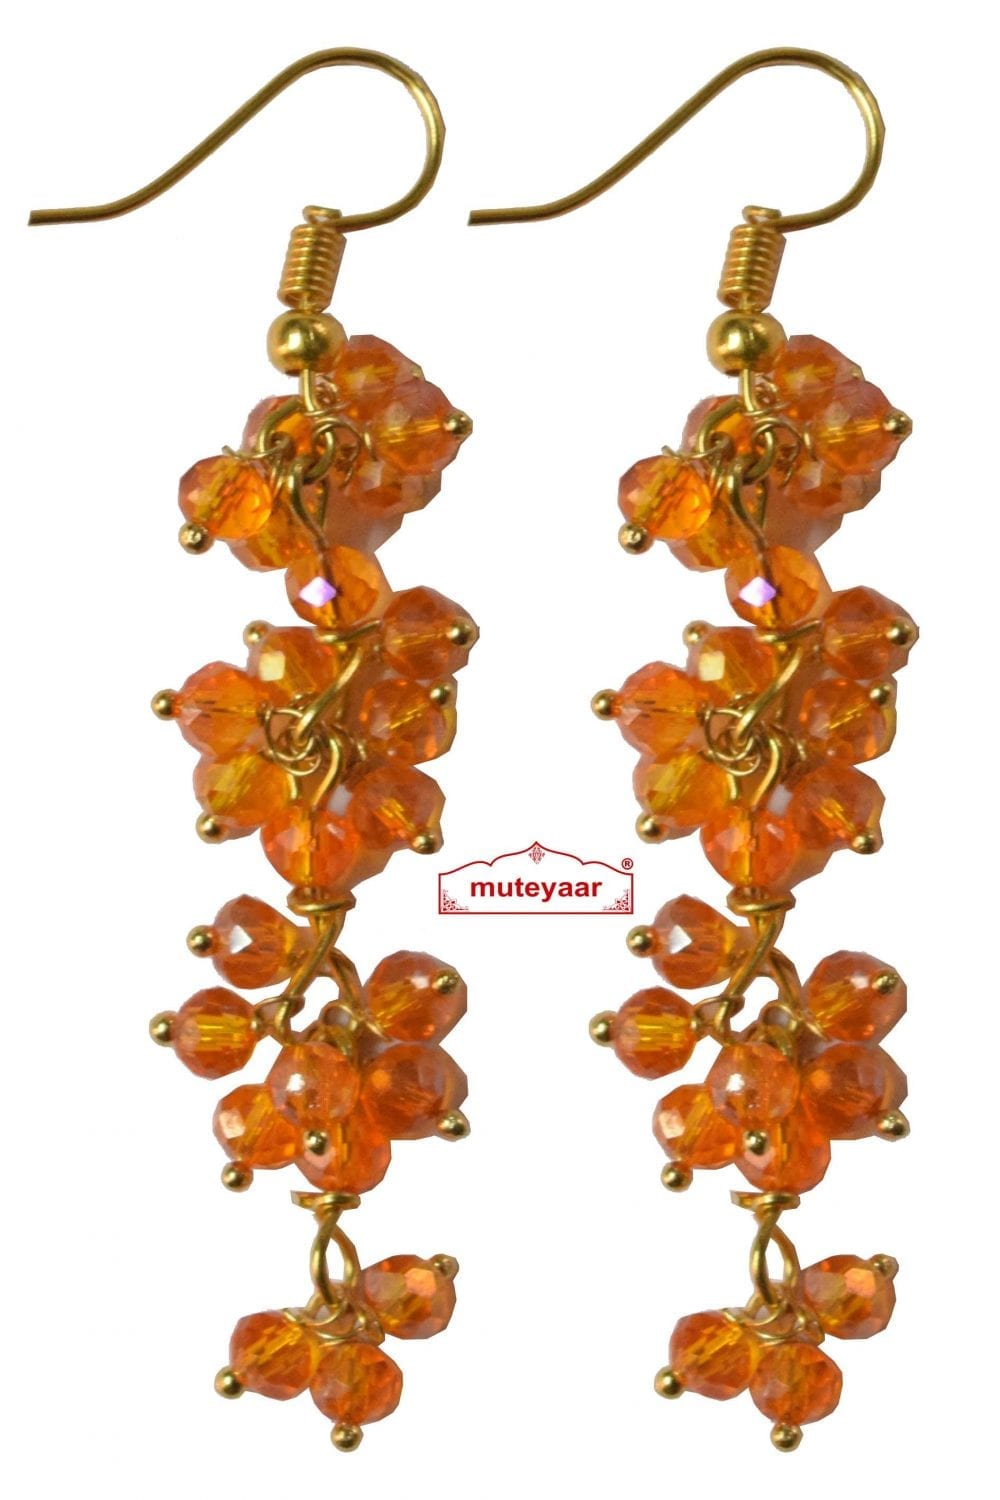 4 Step Crystal Earrings Jhumki - All colours available 1